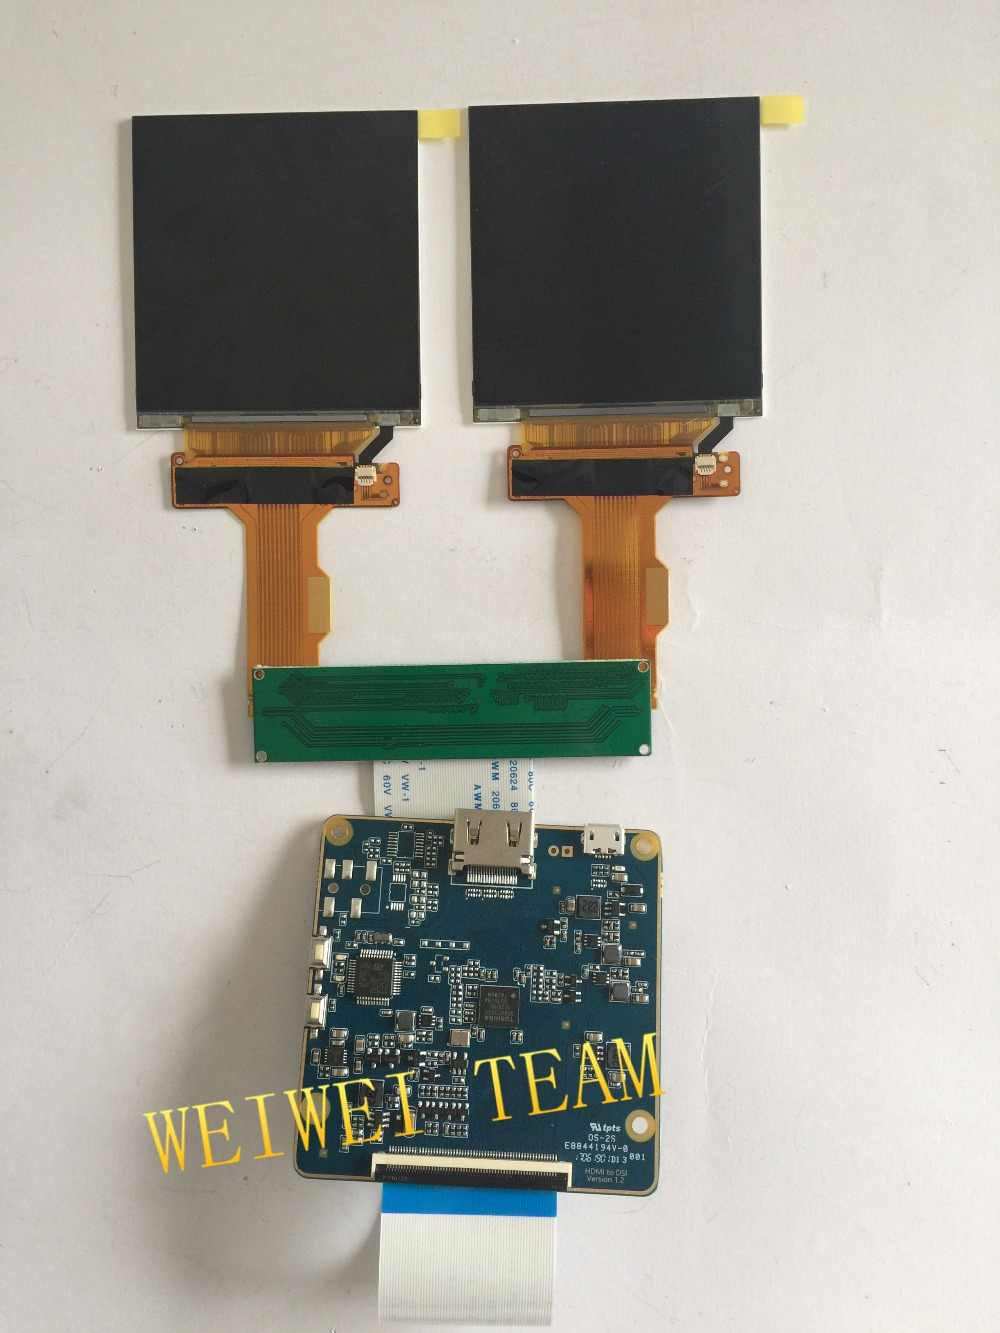 2 9 inch 1440*1440 2K TFT LCD MIPI screen with HDMI to MIPI Dsi driver  board for HMD VR AR project